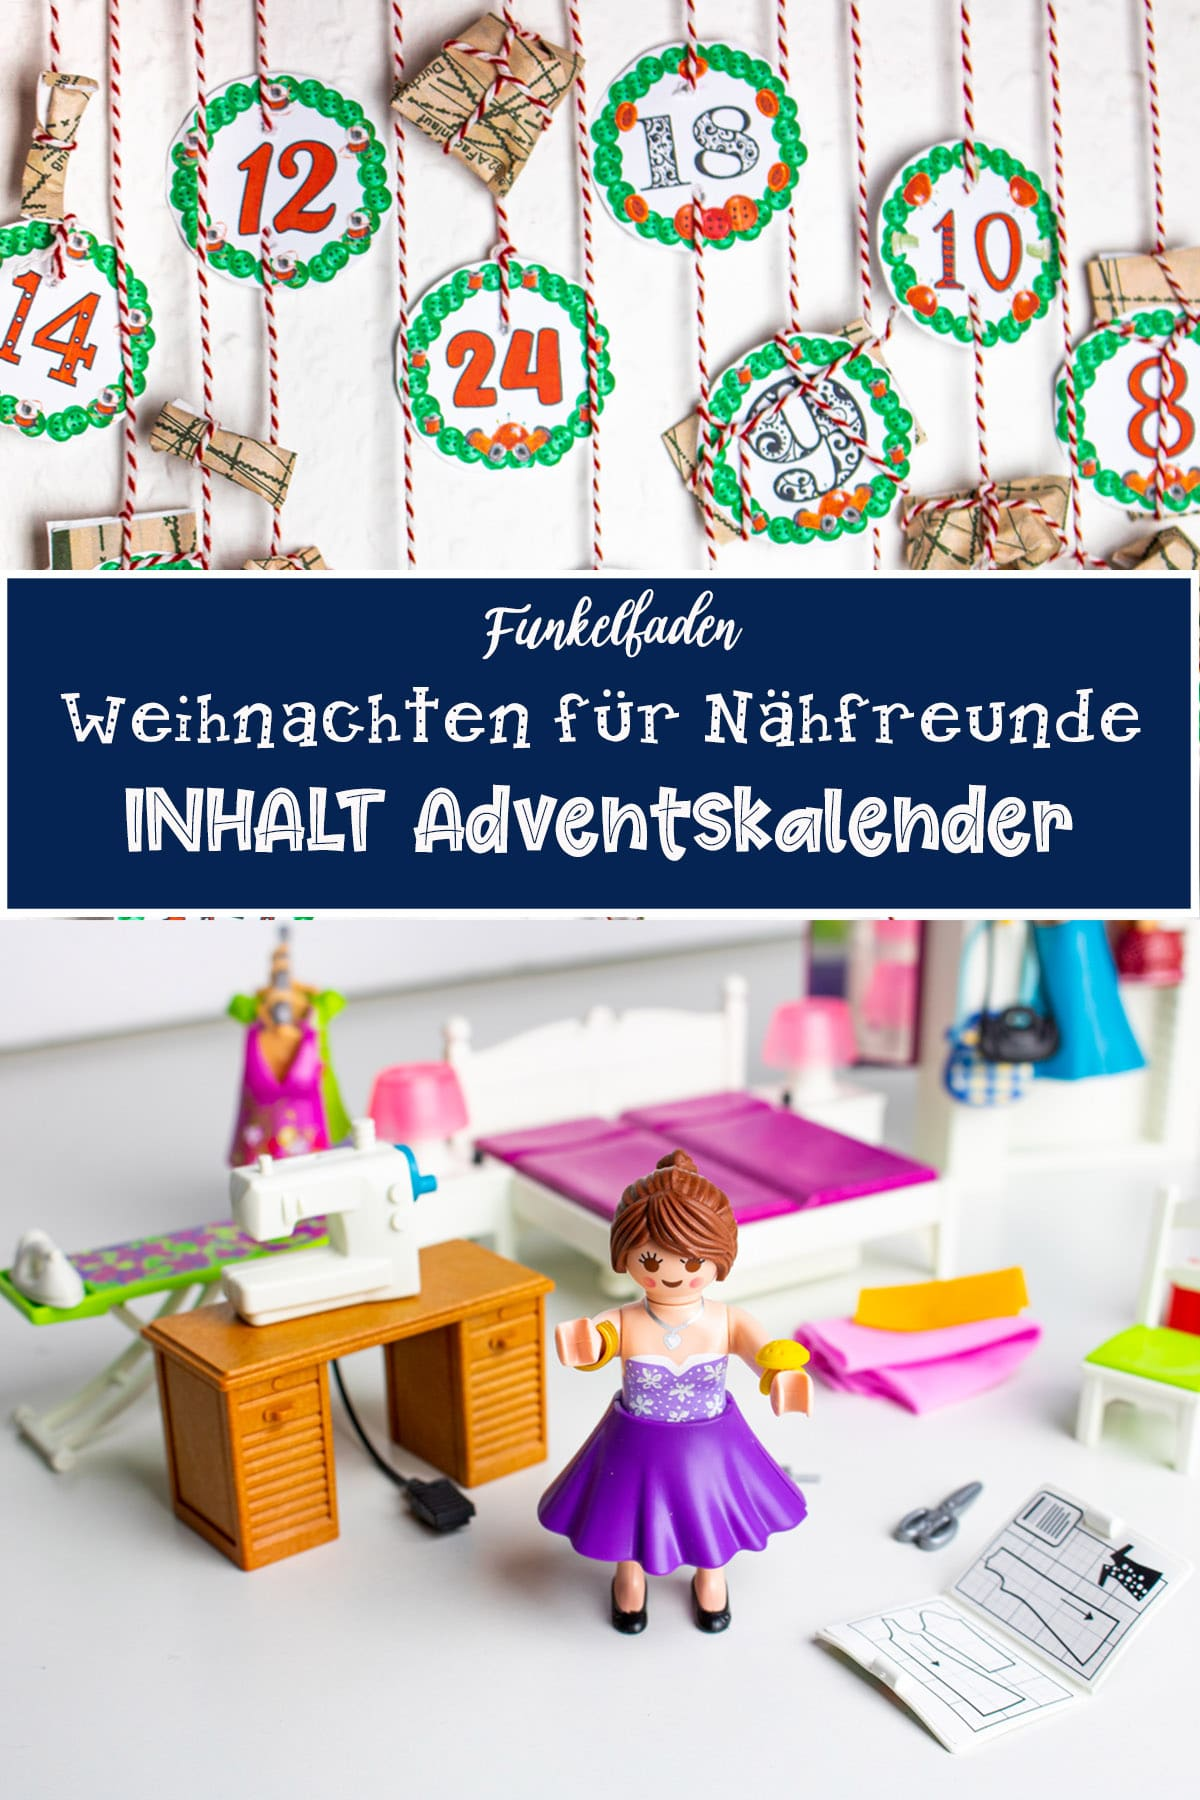 Upcycling Adventskalender aus Toilettenpapierrollen 5